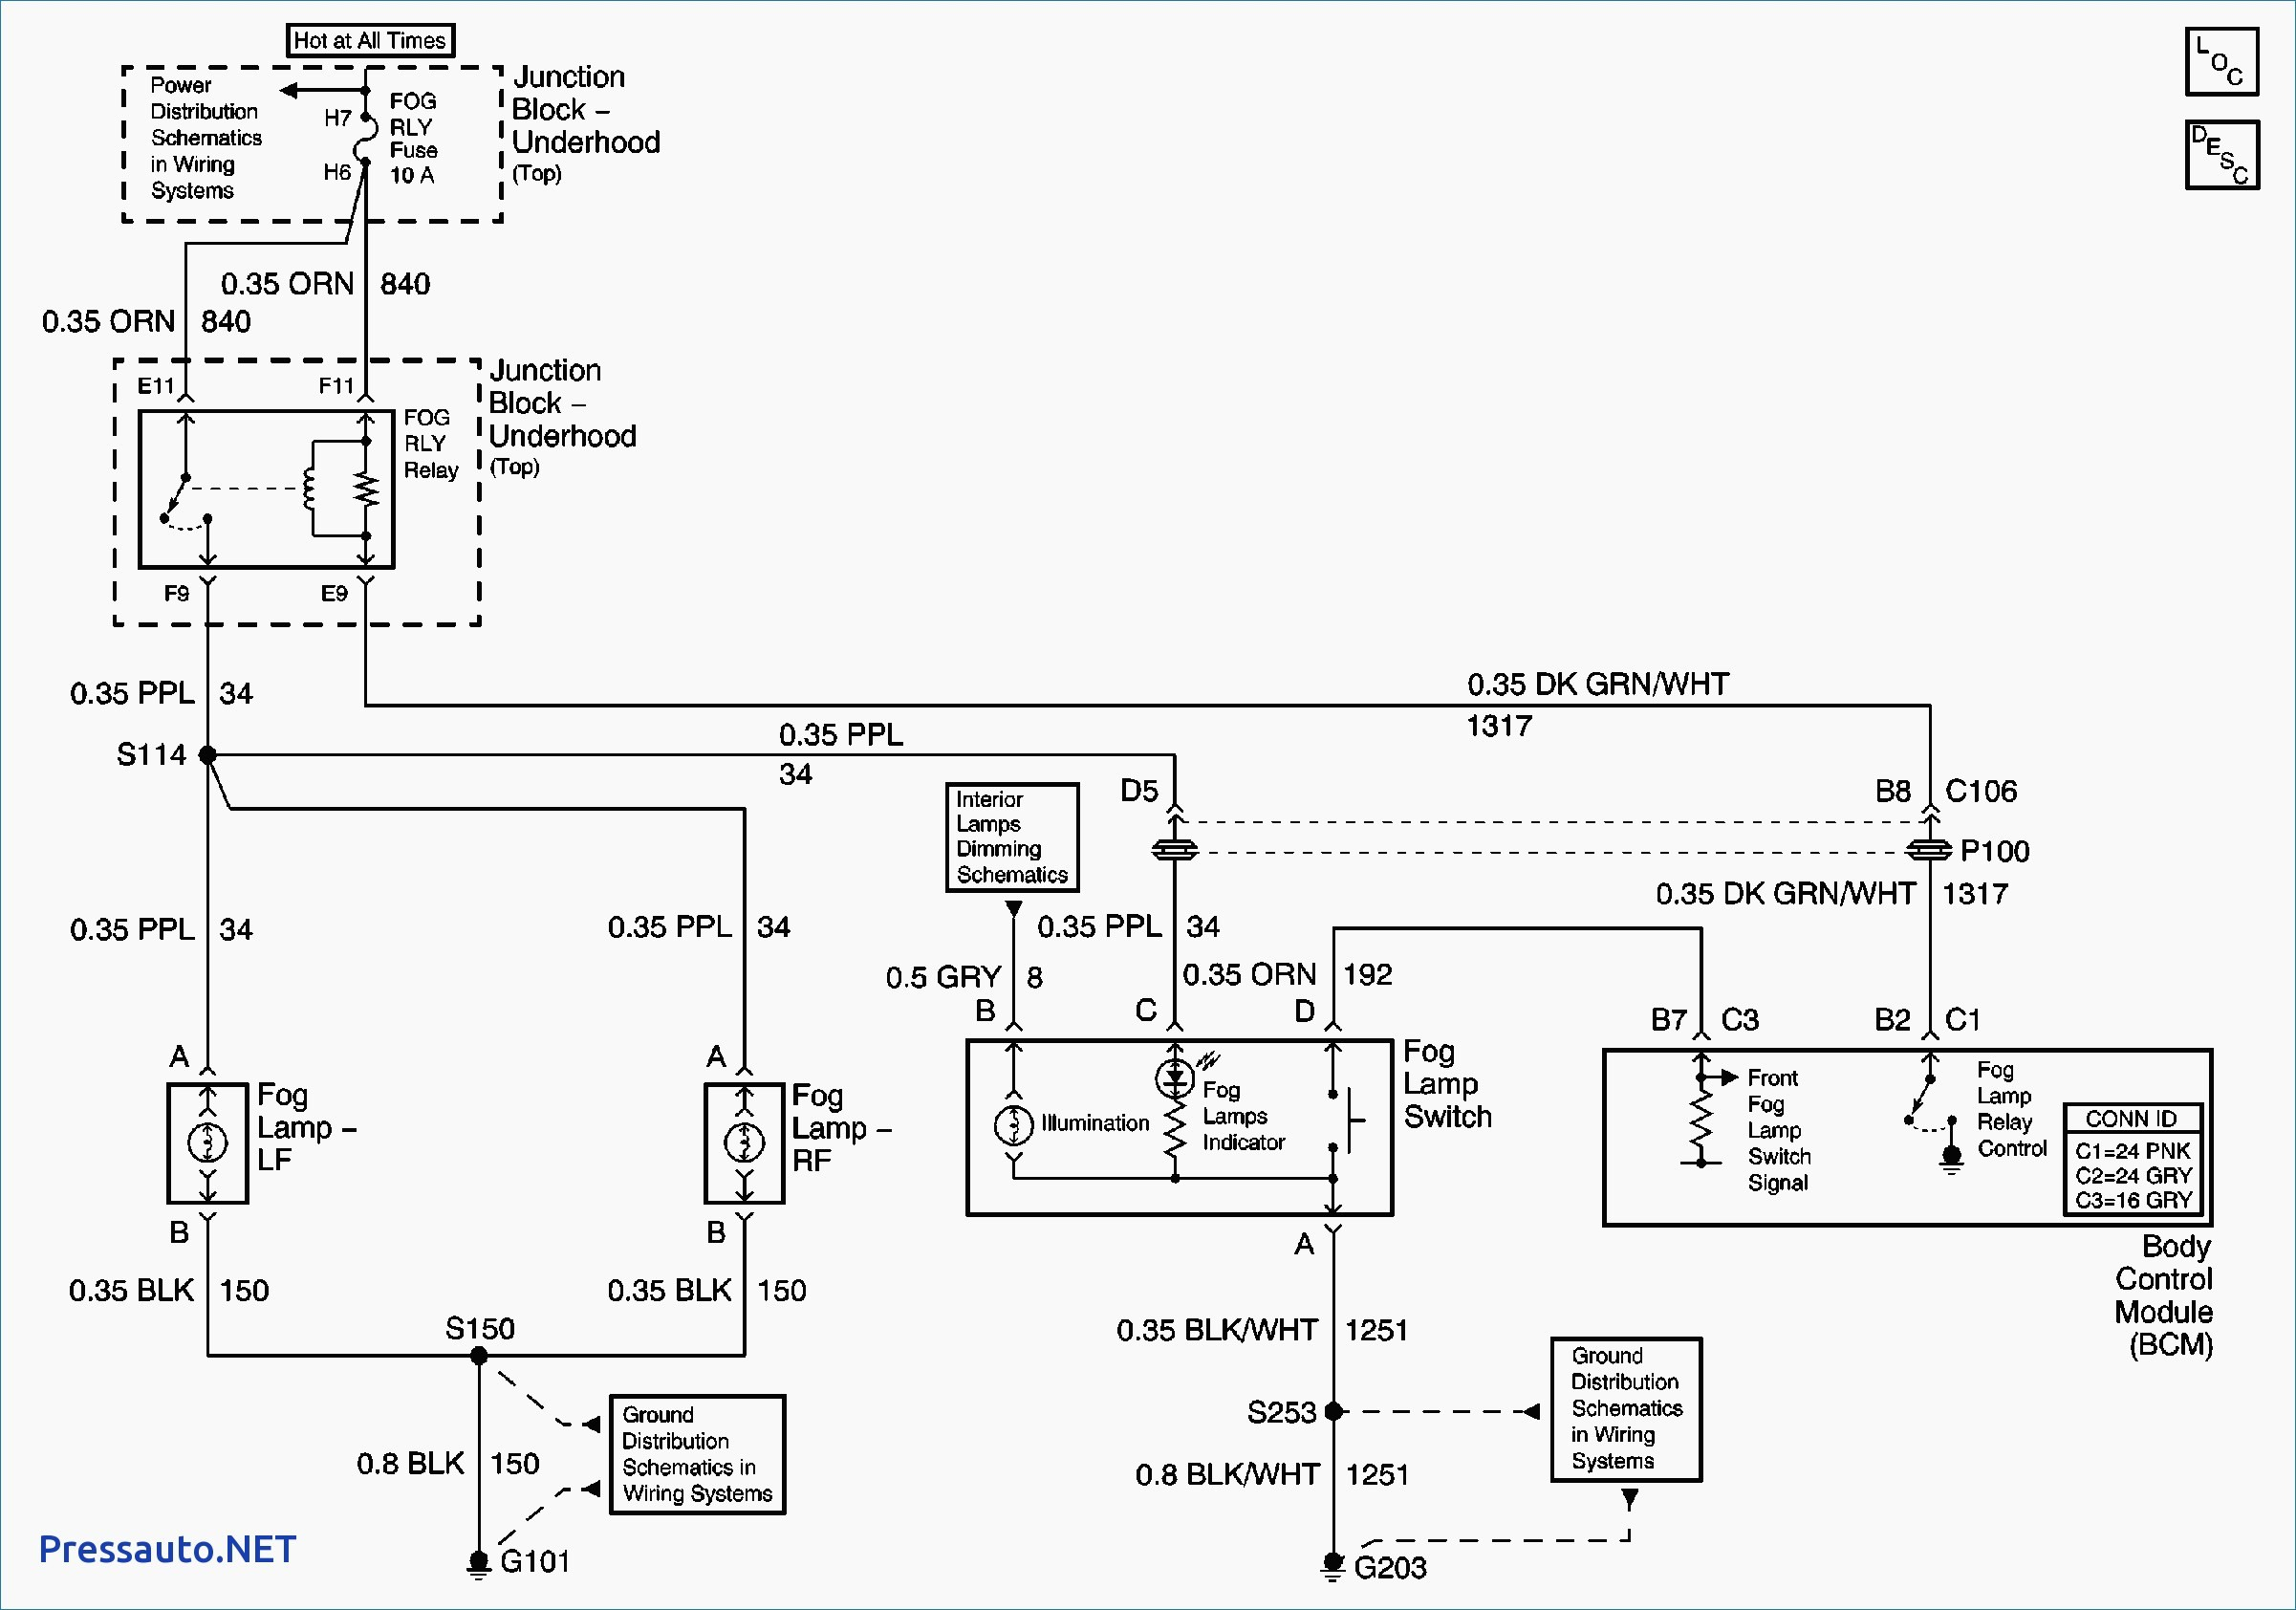 Wiring Diagram For Hella f Road Lights The At Kc Fog Light With New